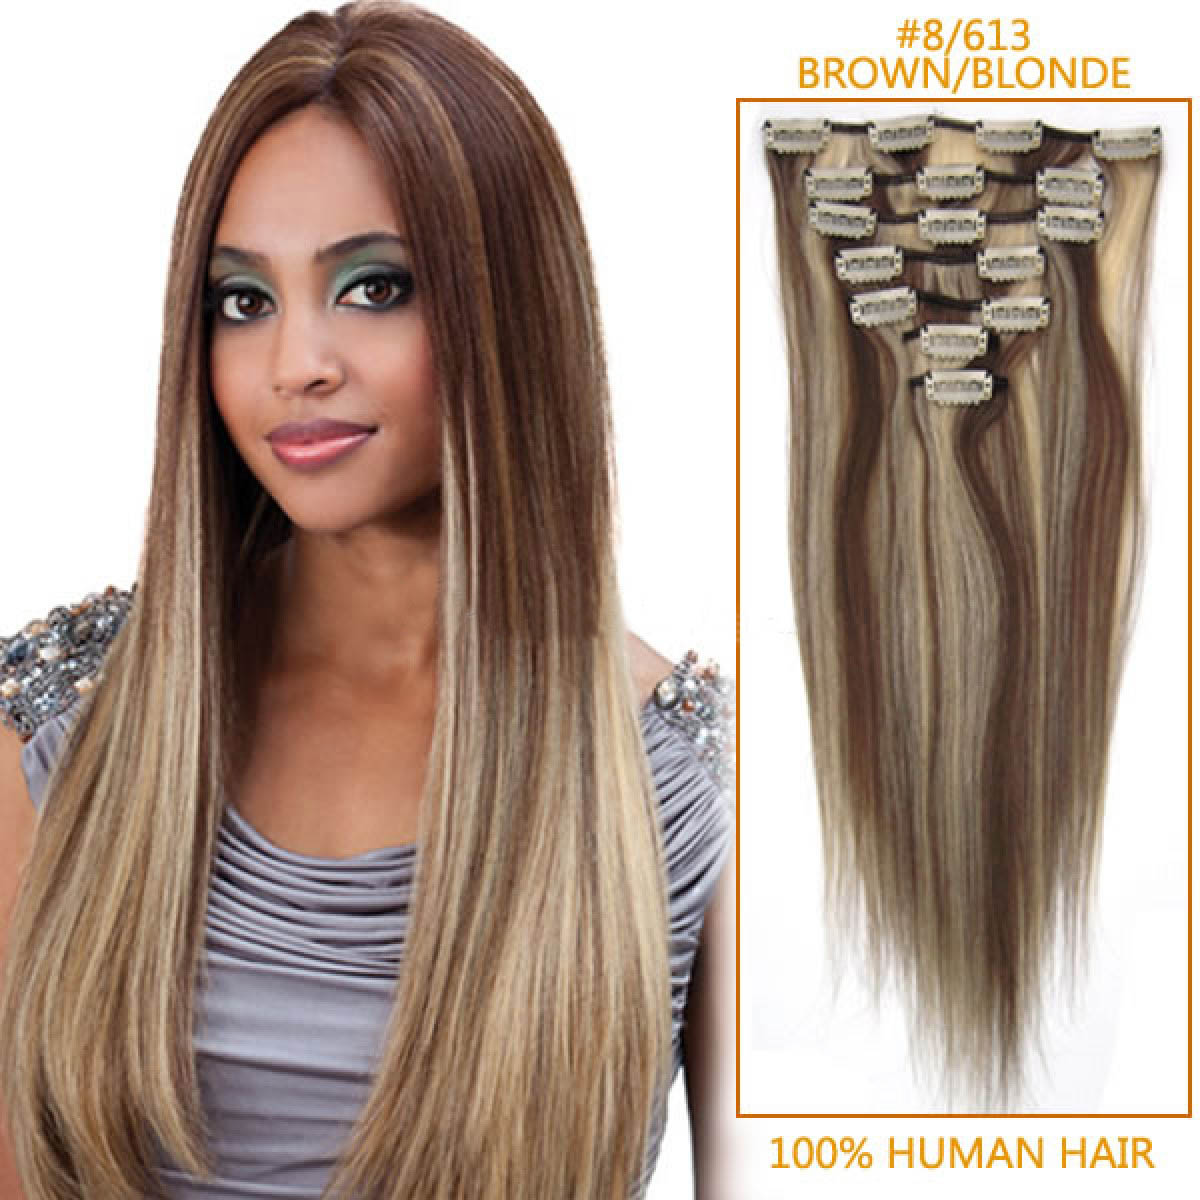 Hair Extension Highlights 7000 Hair Highlights